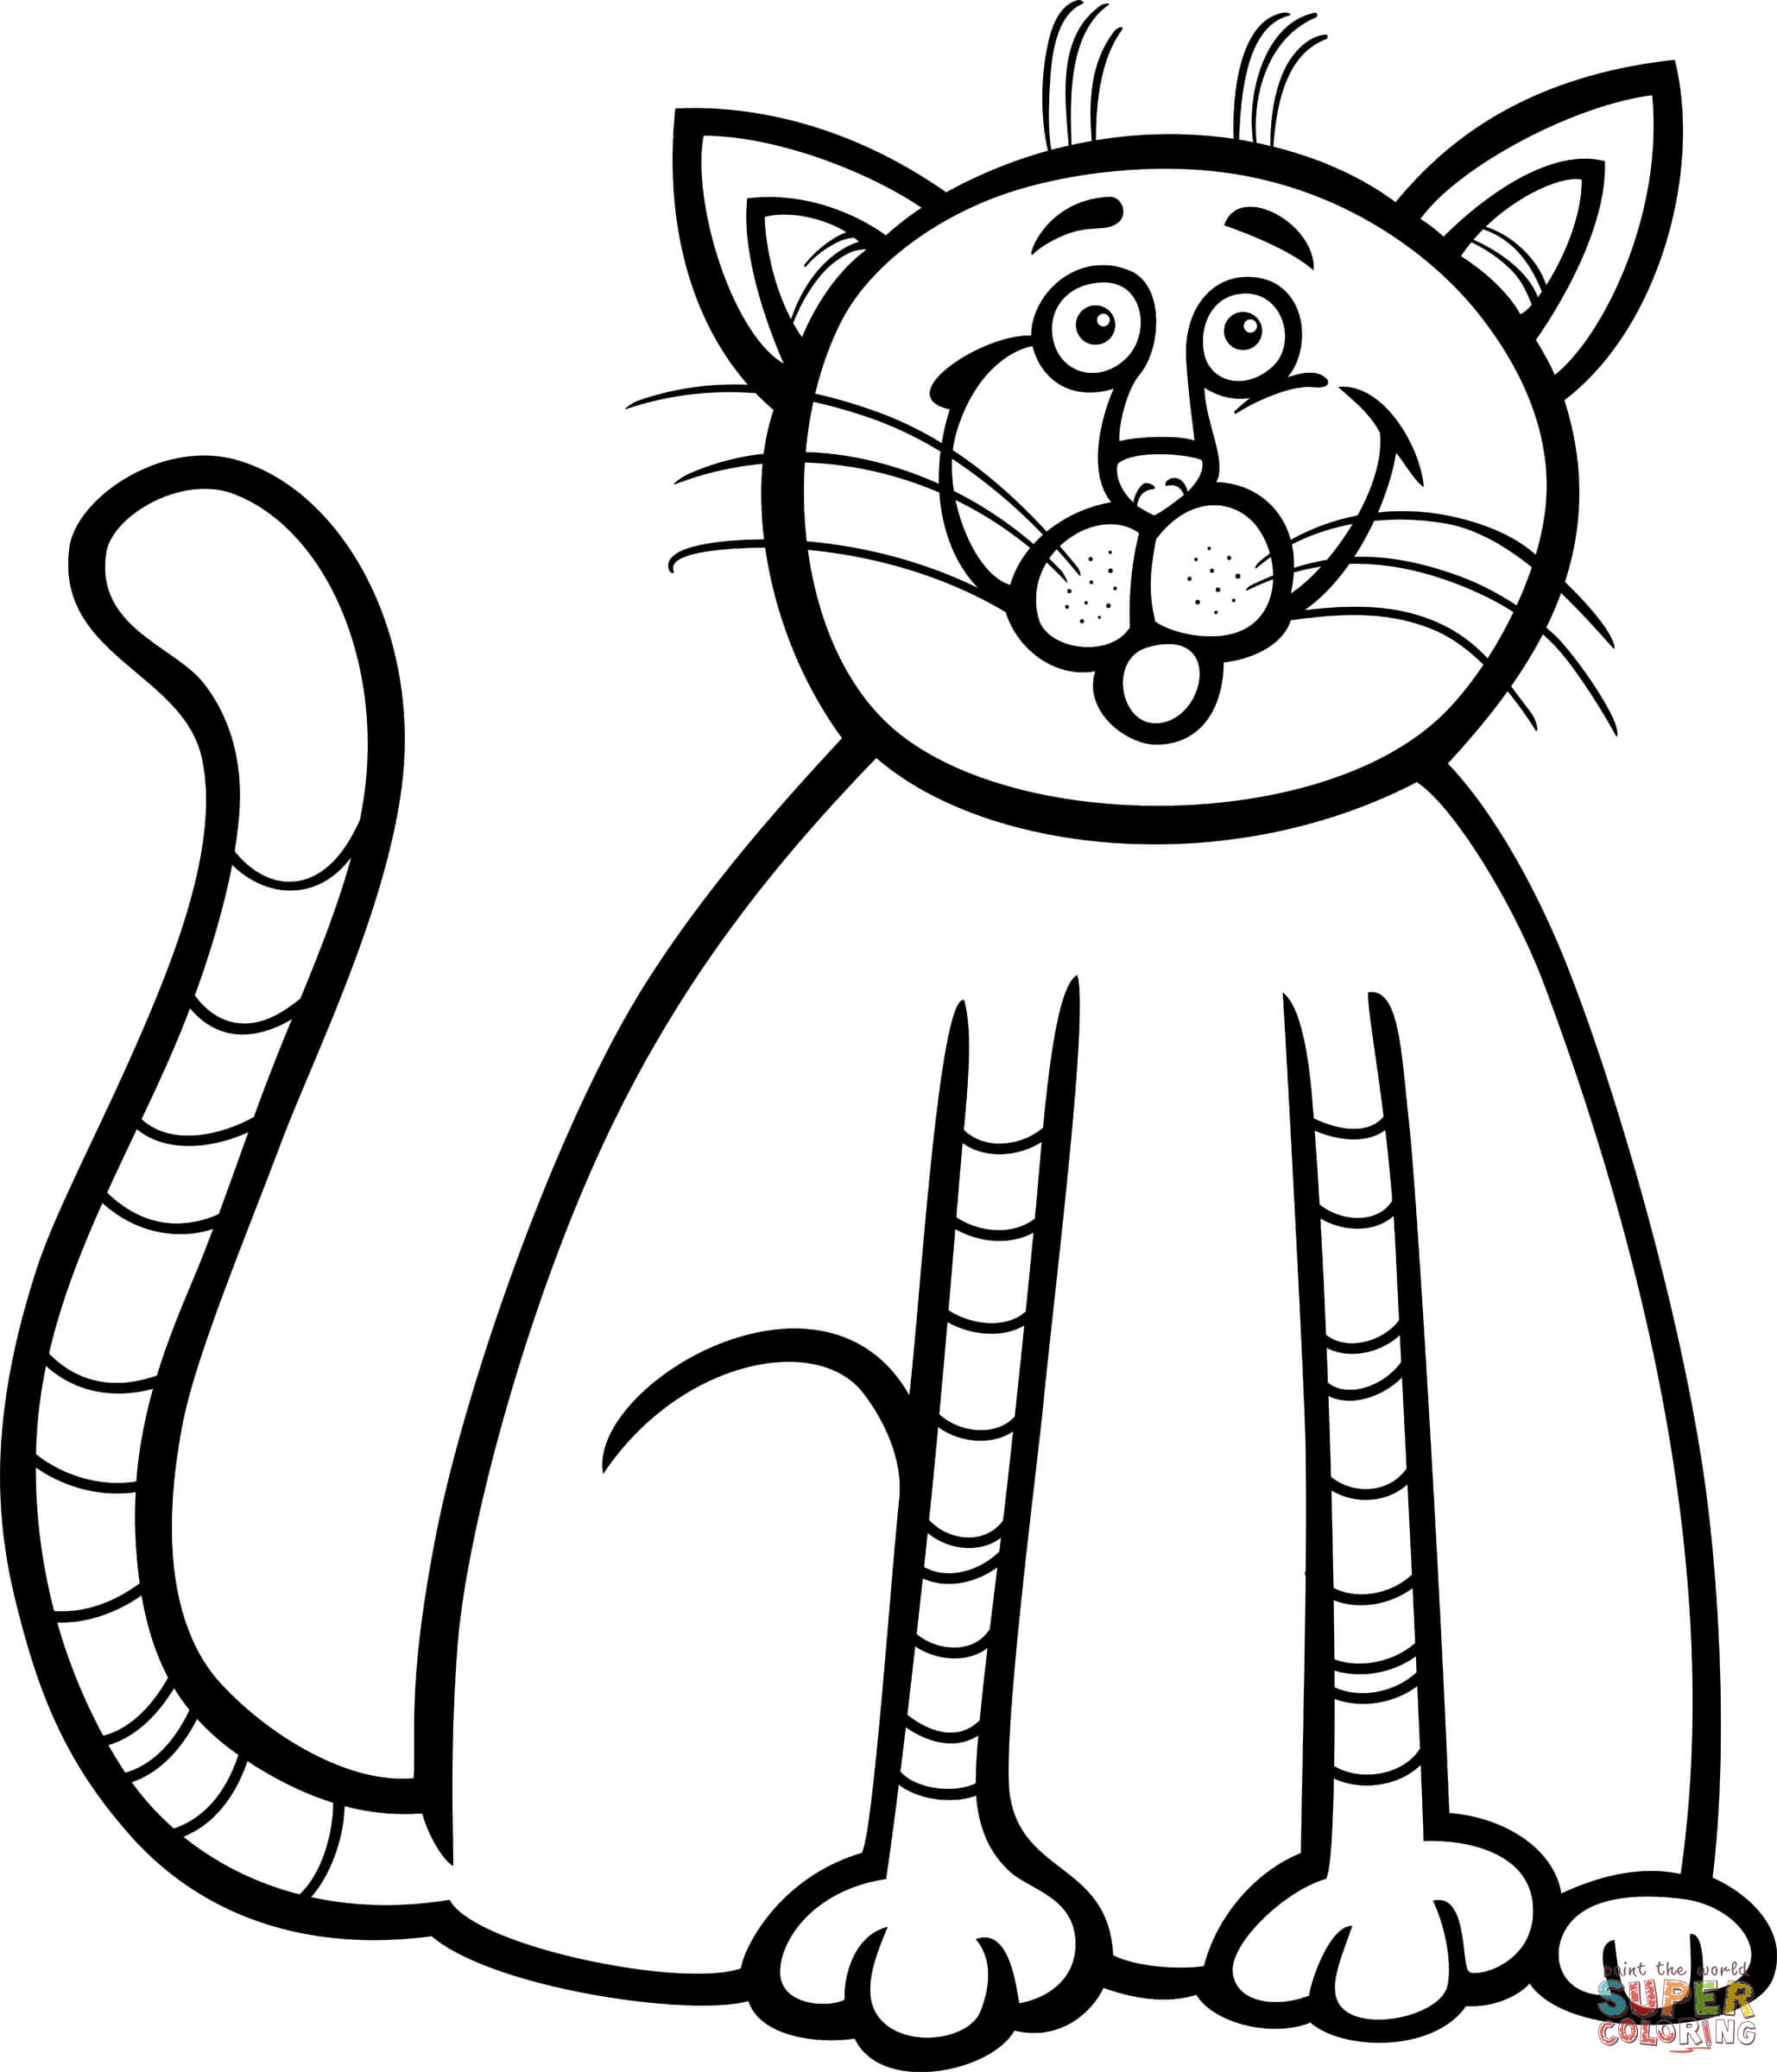 baby kitten coloring kitten coloring pages best coloring pages for kids coloring baby kitten